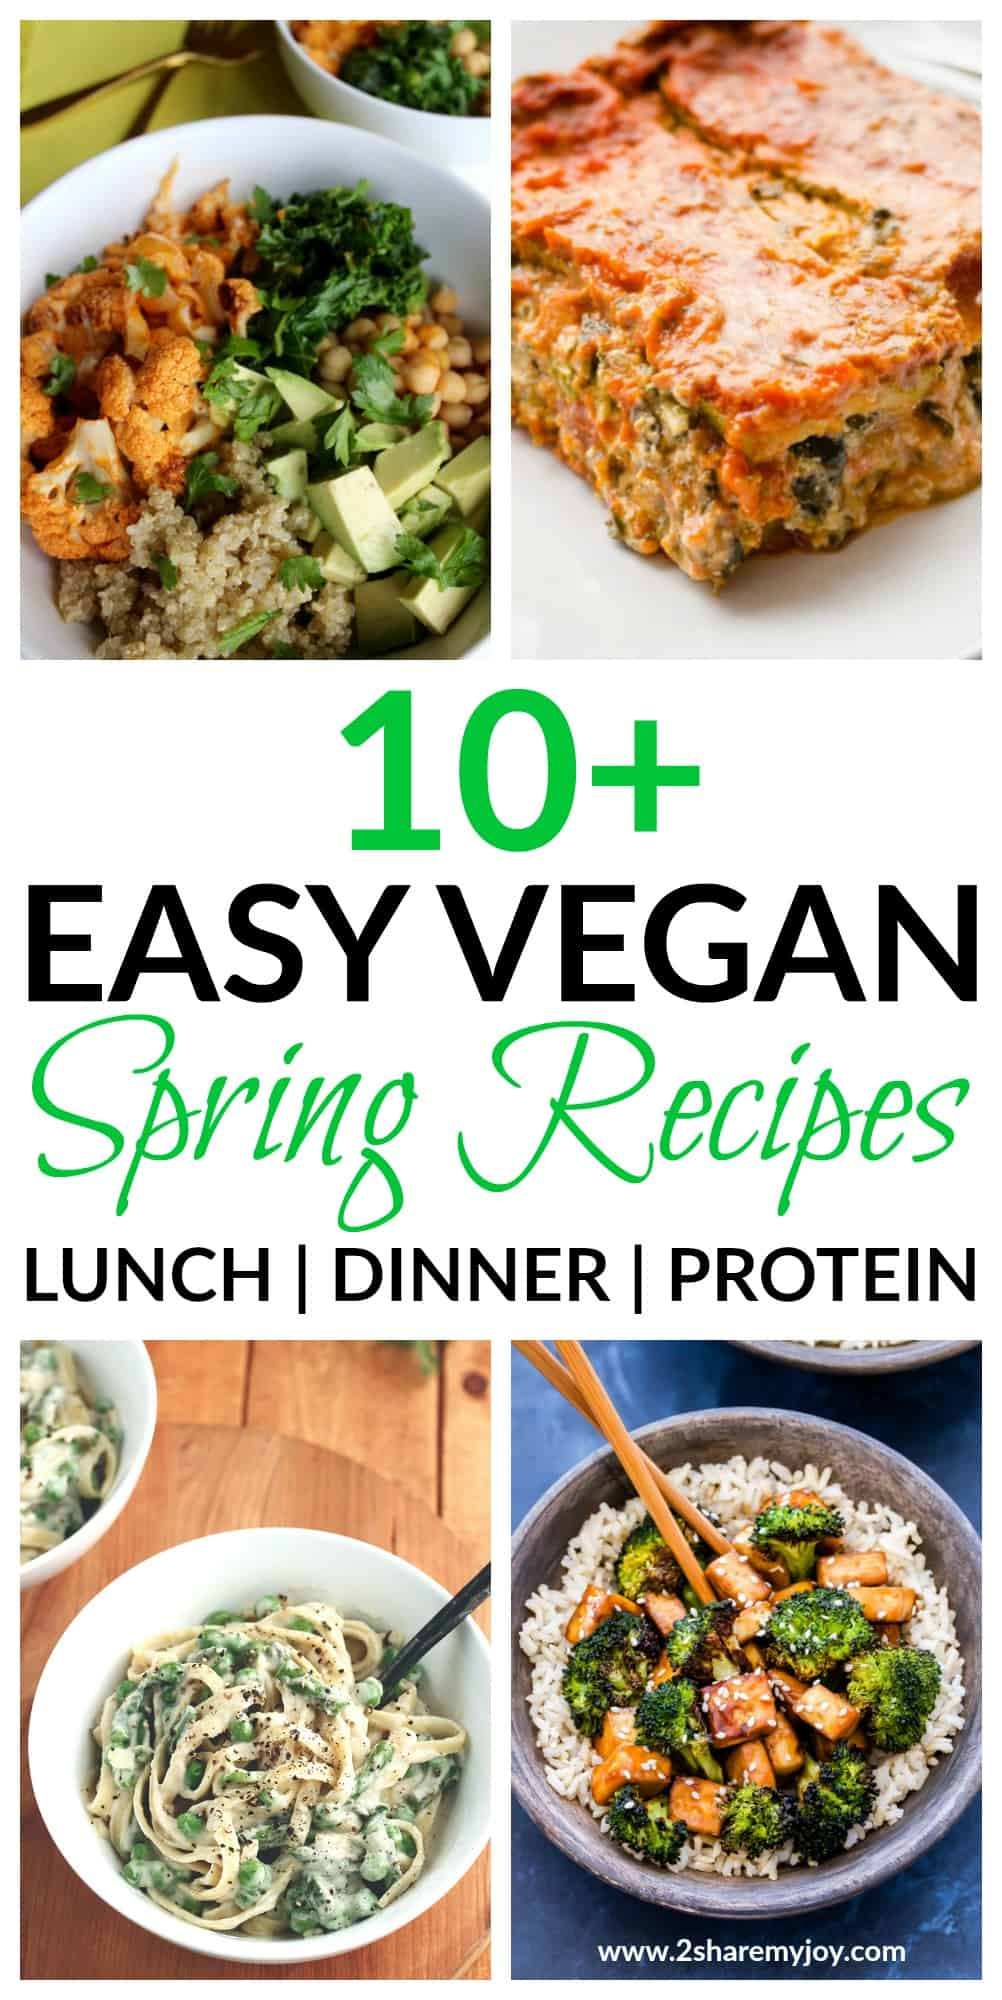 Easy vegan spring recipes for lunch or dinner 2sharemyjoy easy vegan spring recipes for a whole food plant based diet high protein dinner recipes forumfinder Gallery